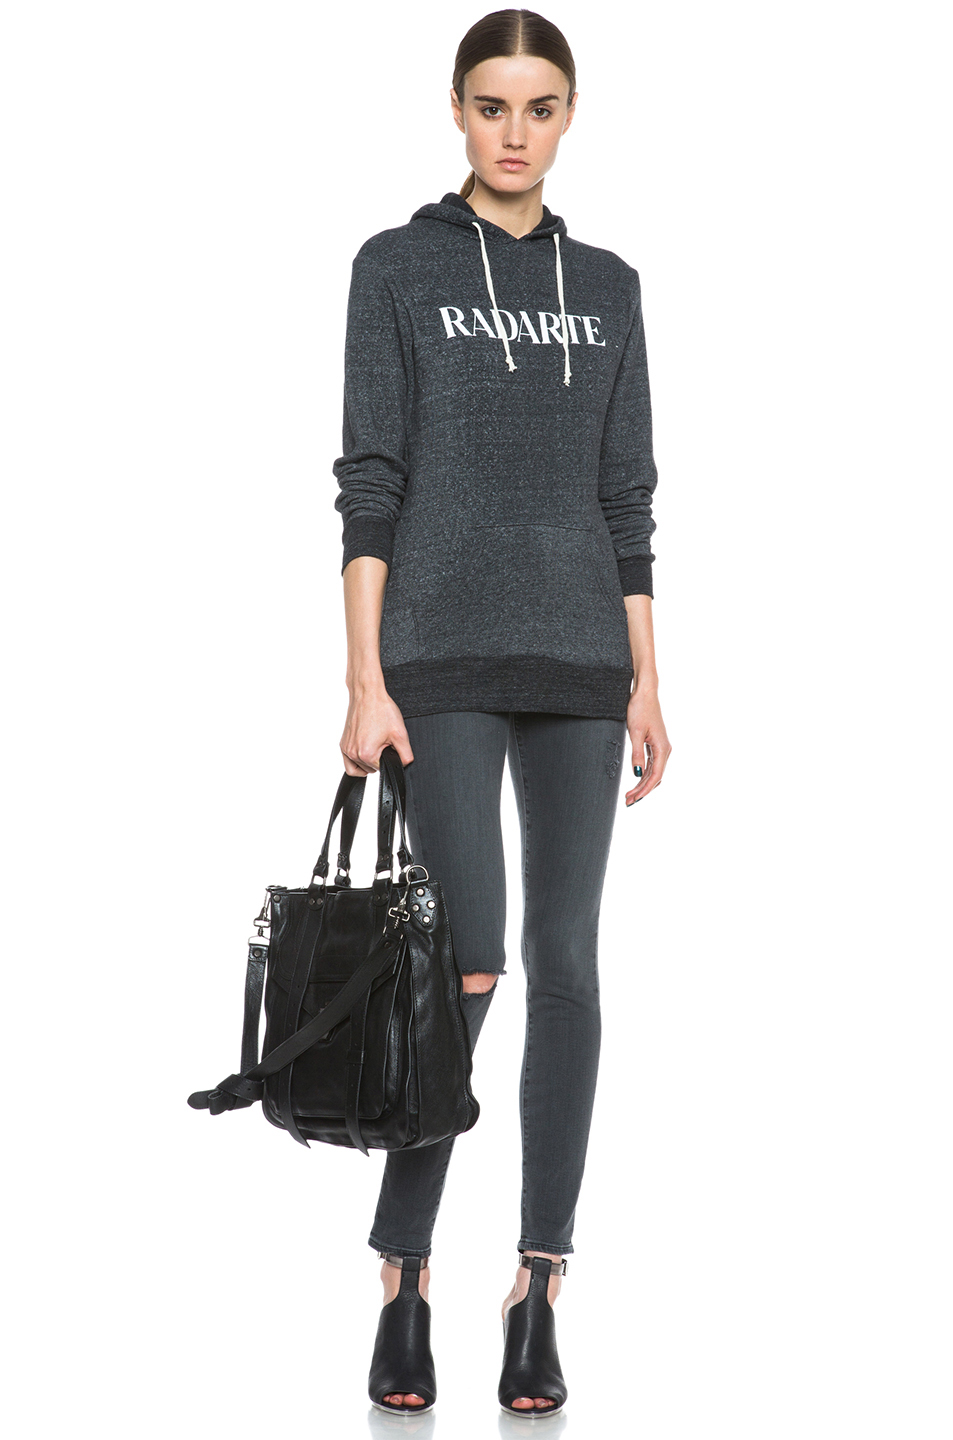 Rodarte|Radarte Poly-Blend Hoodie in Black Heather